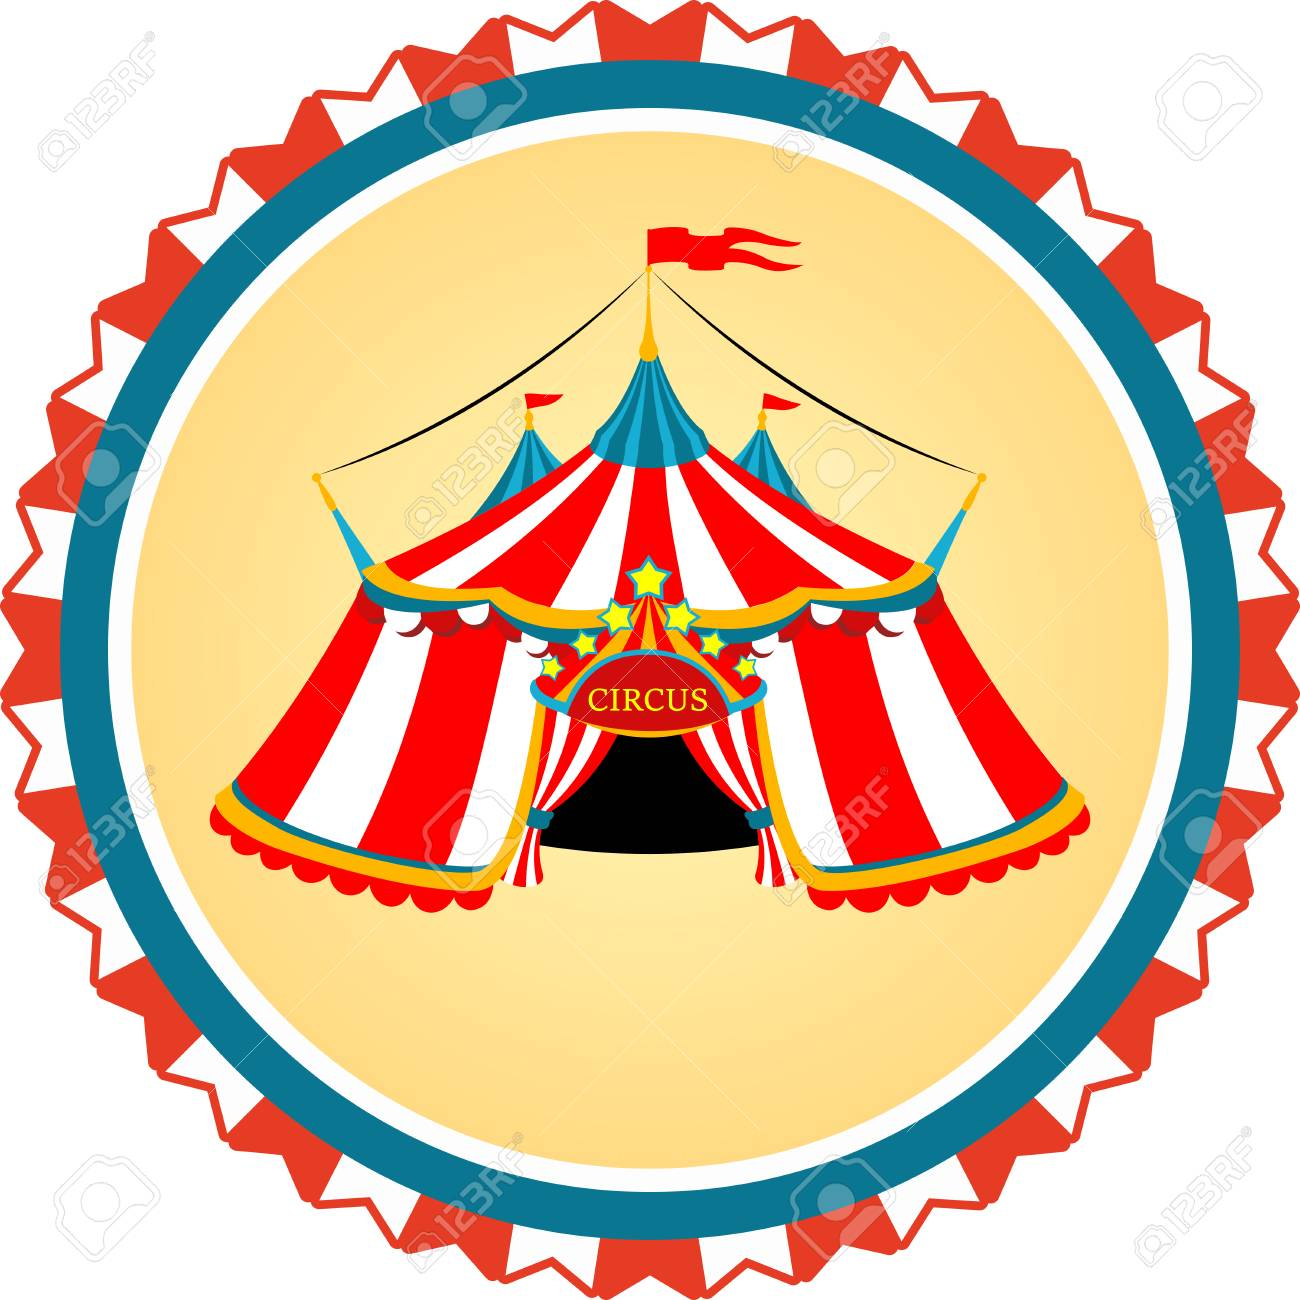 vector colored clip art with striped circus tent royalty free rh 123rf com circus tent clip art free circus tent clip art free